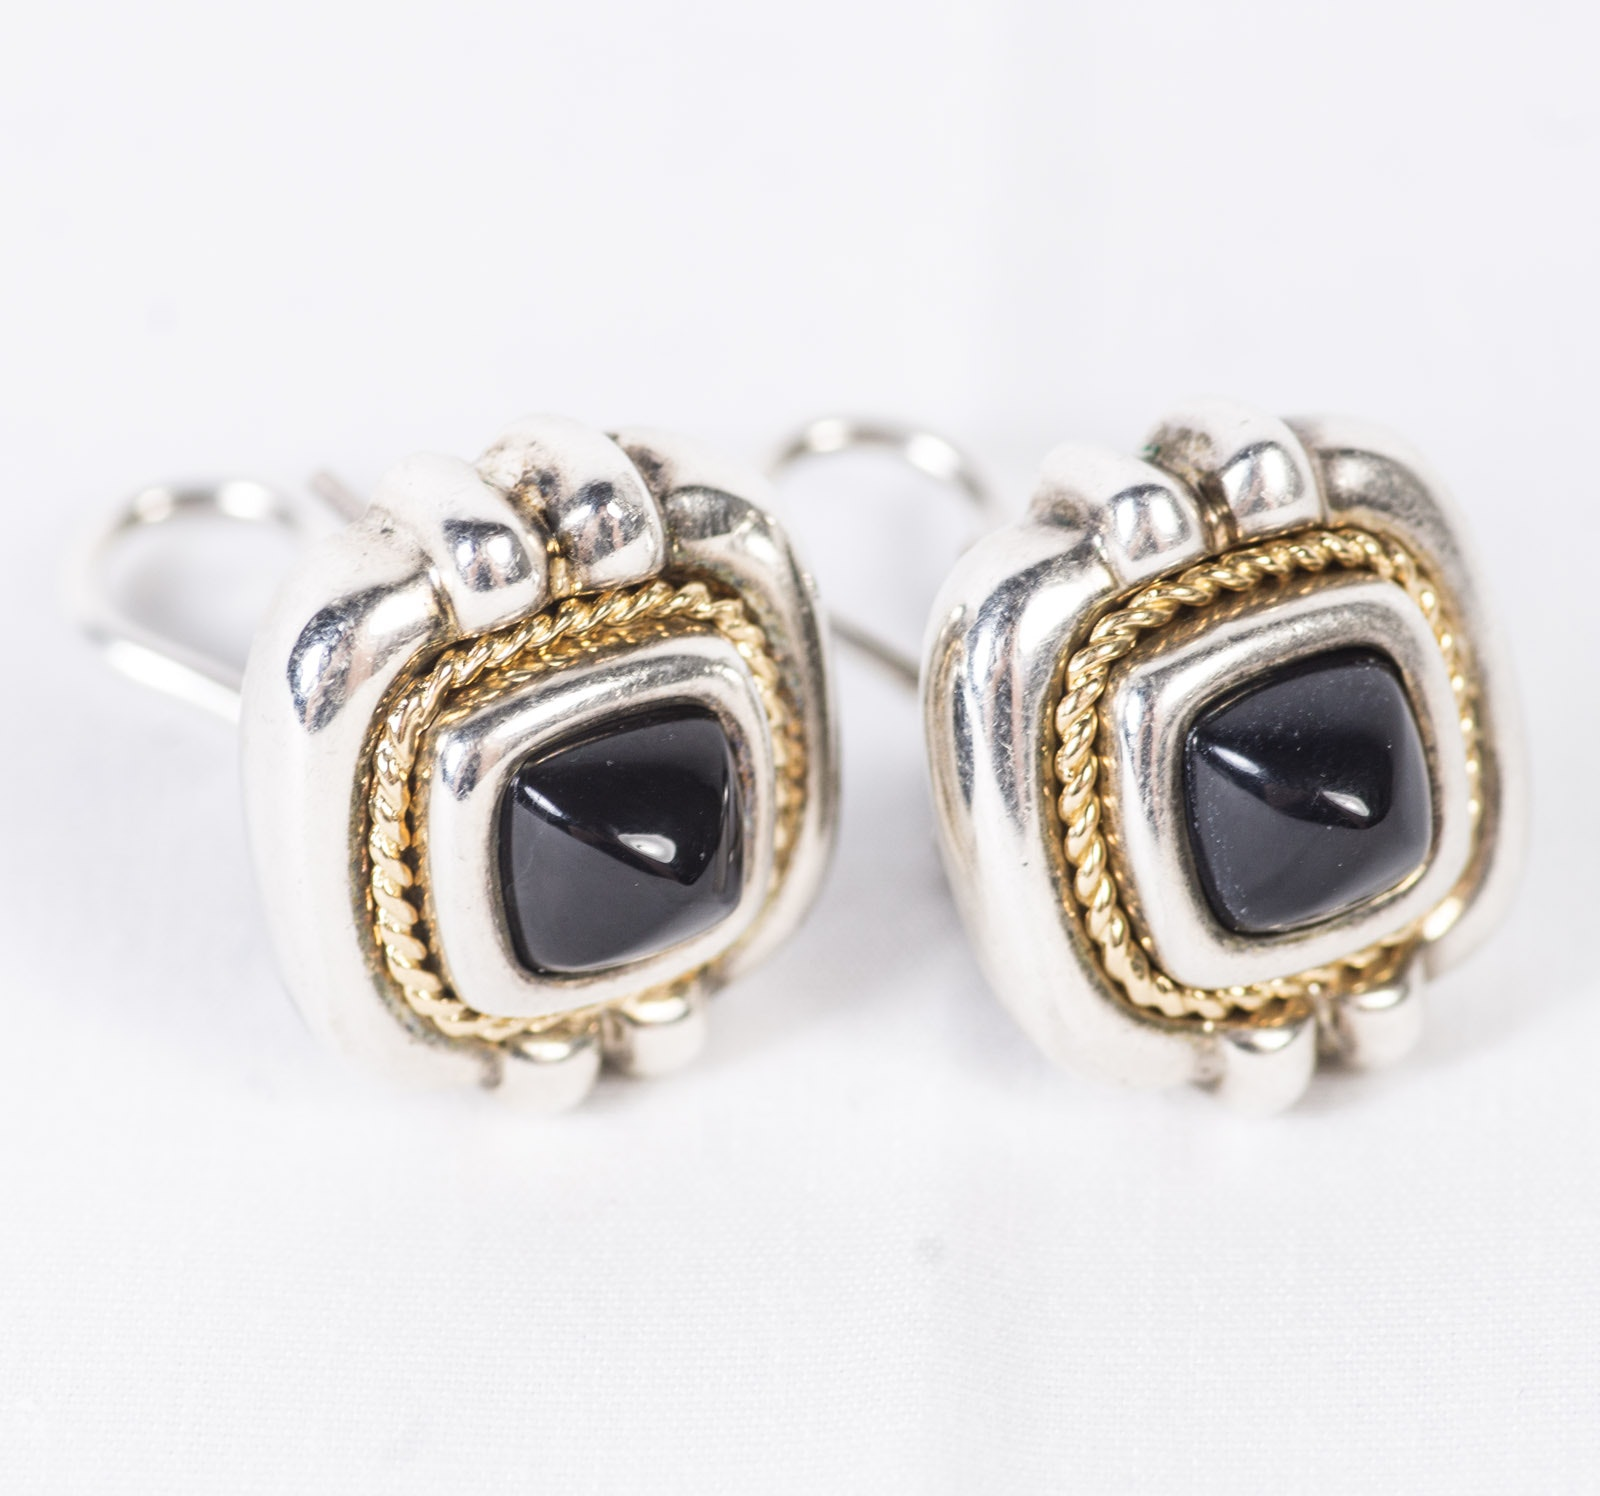 Tiffany & Co. 18K Yellow Gold and Sterling Black Onyx Earrings